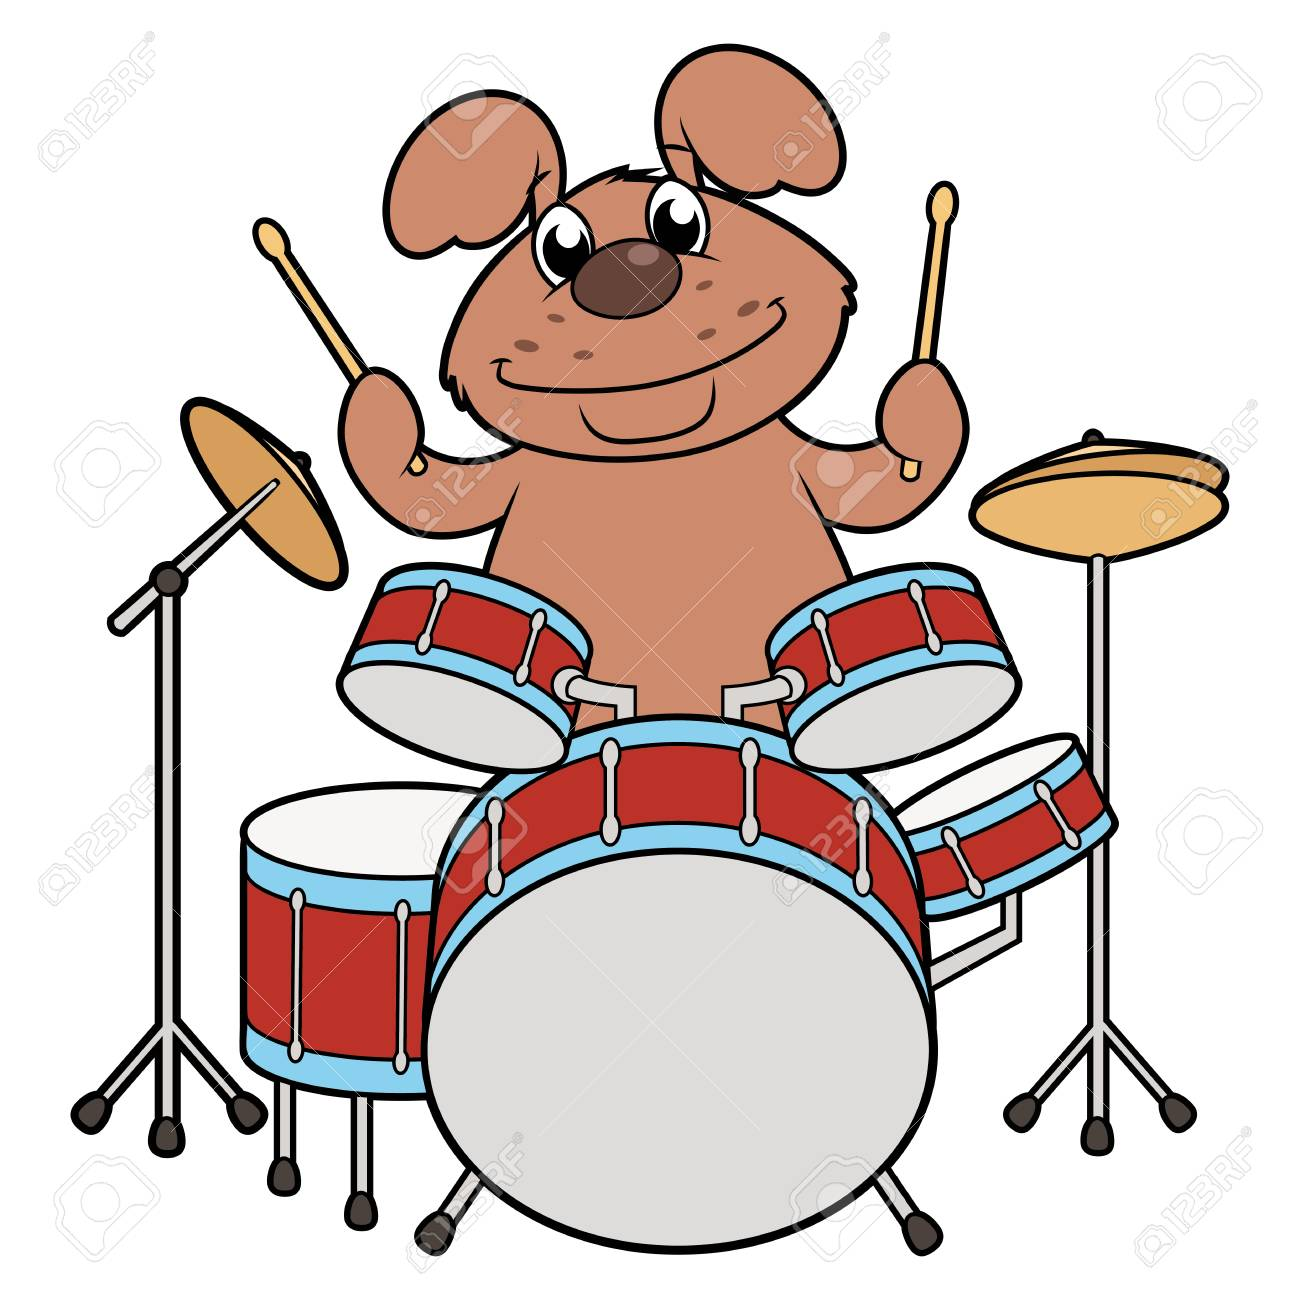 Illustration Of The Cute Smiling Dog Playing Drums Royalty Free Cliparts Vectors And Stock Illustration Image 102494538